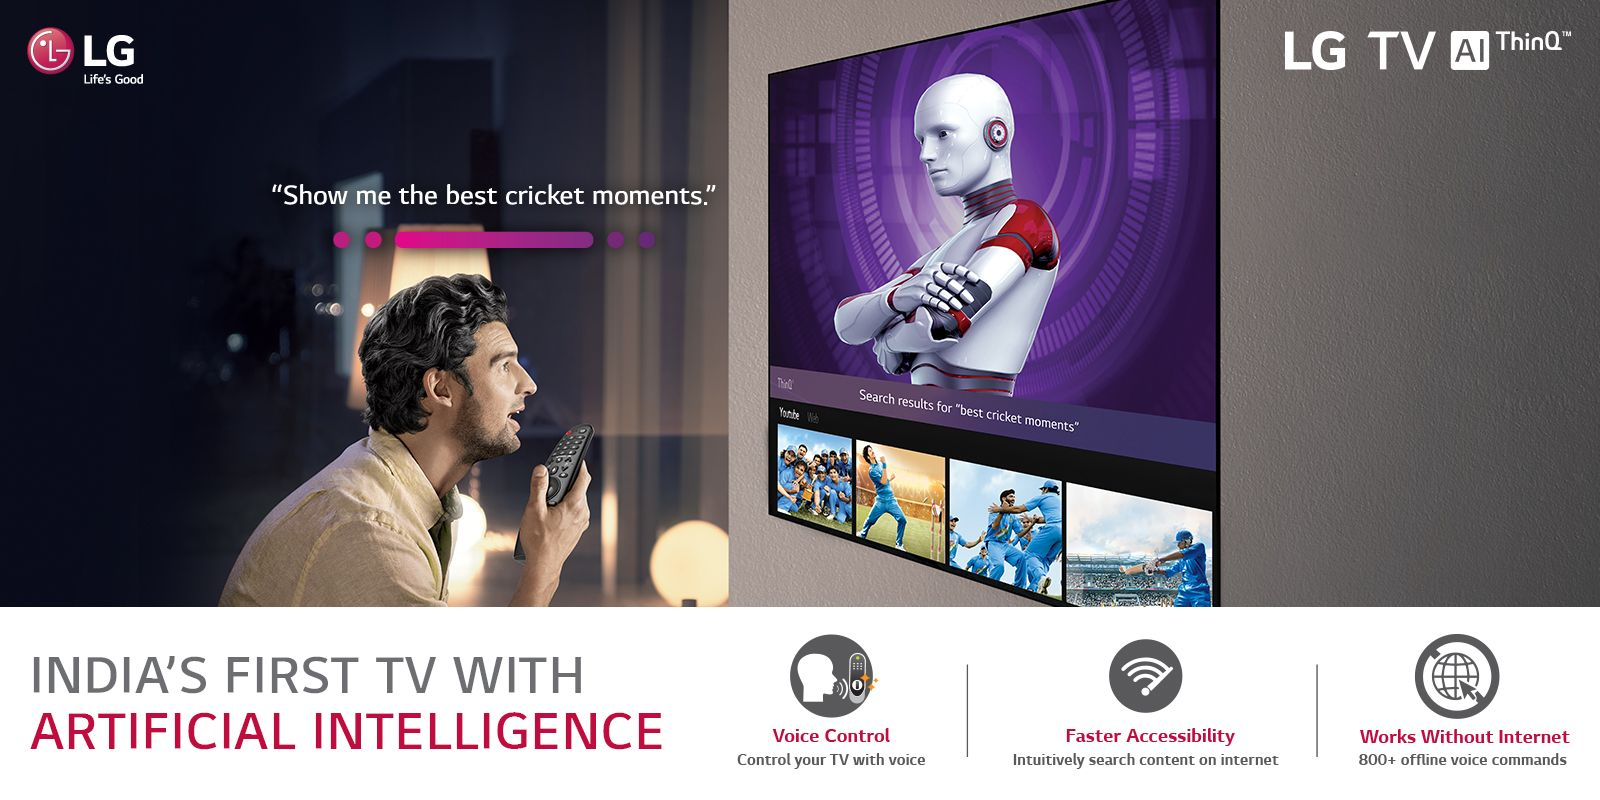 Introducing India's first TV with Artificial Intelligence